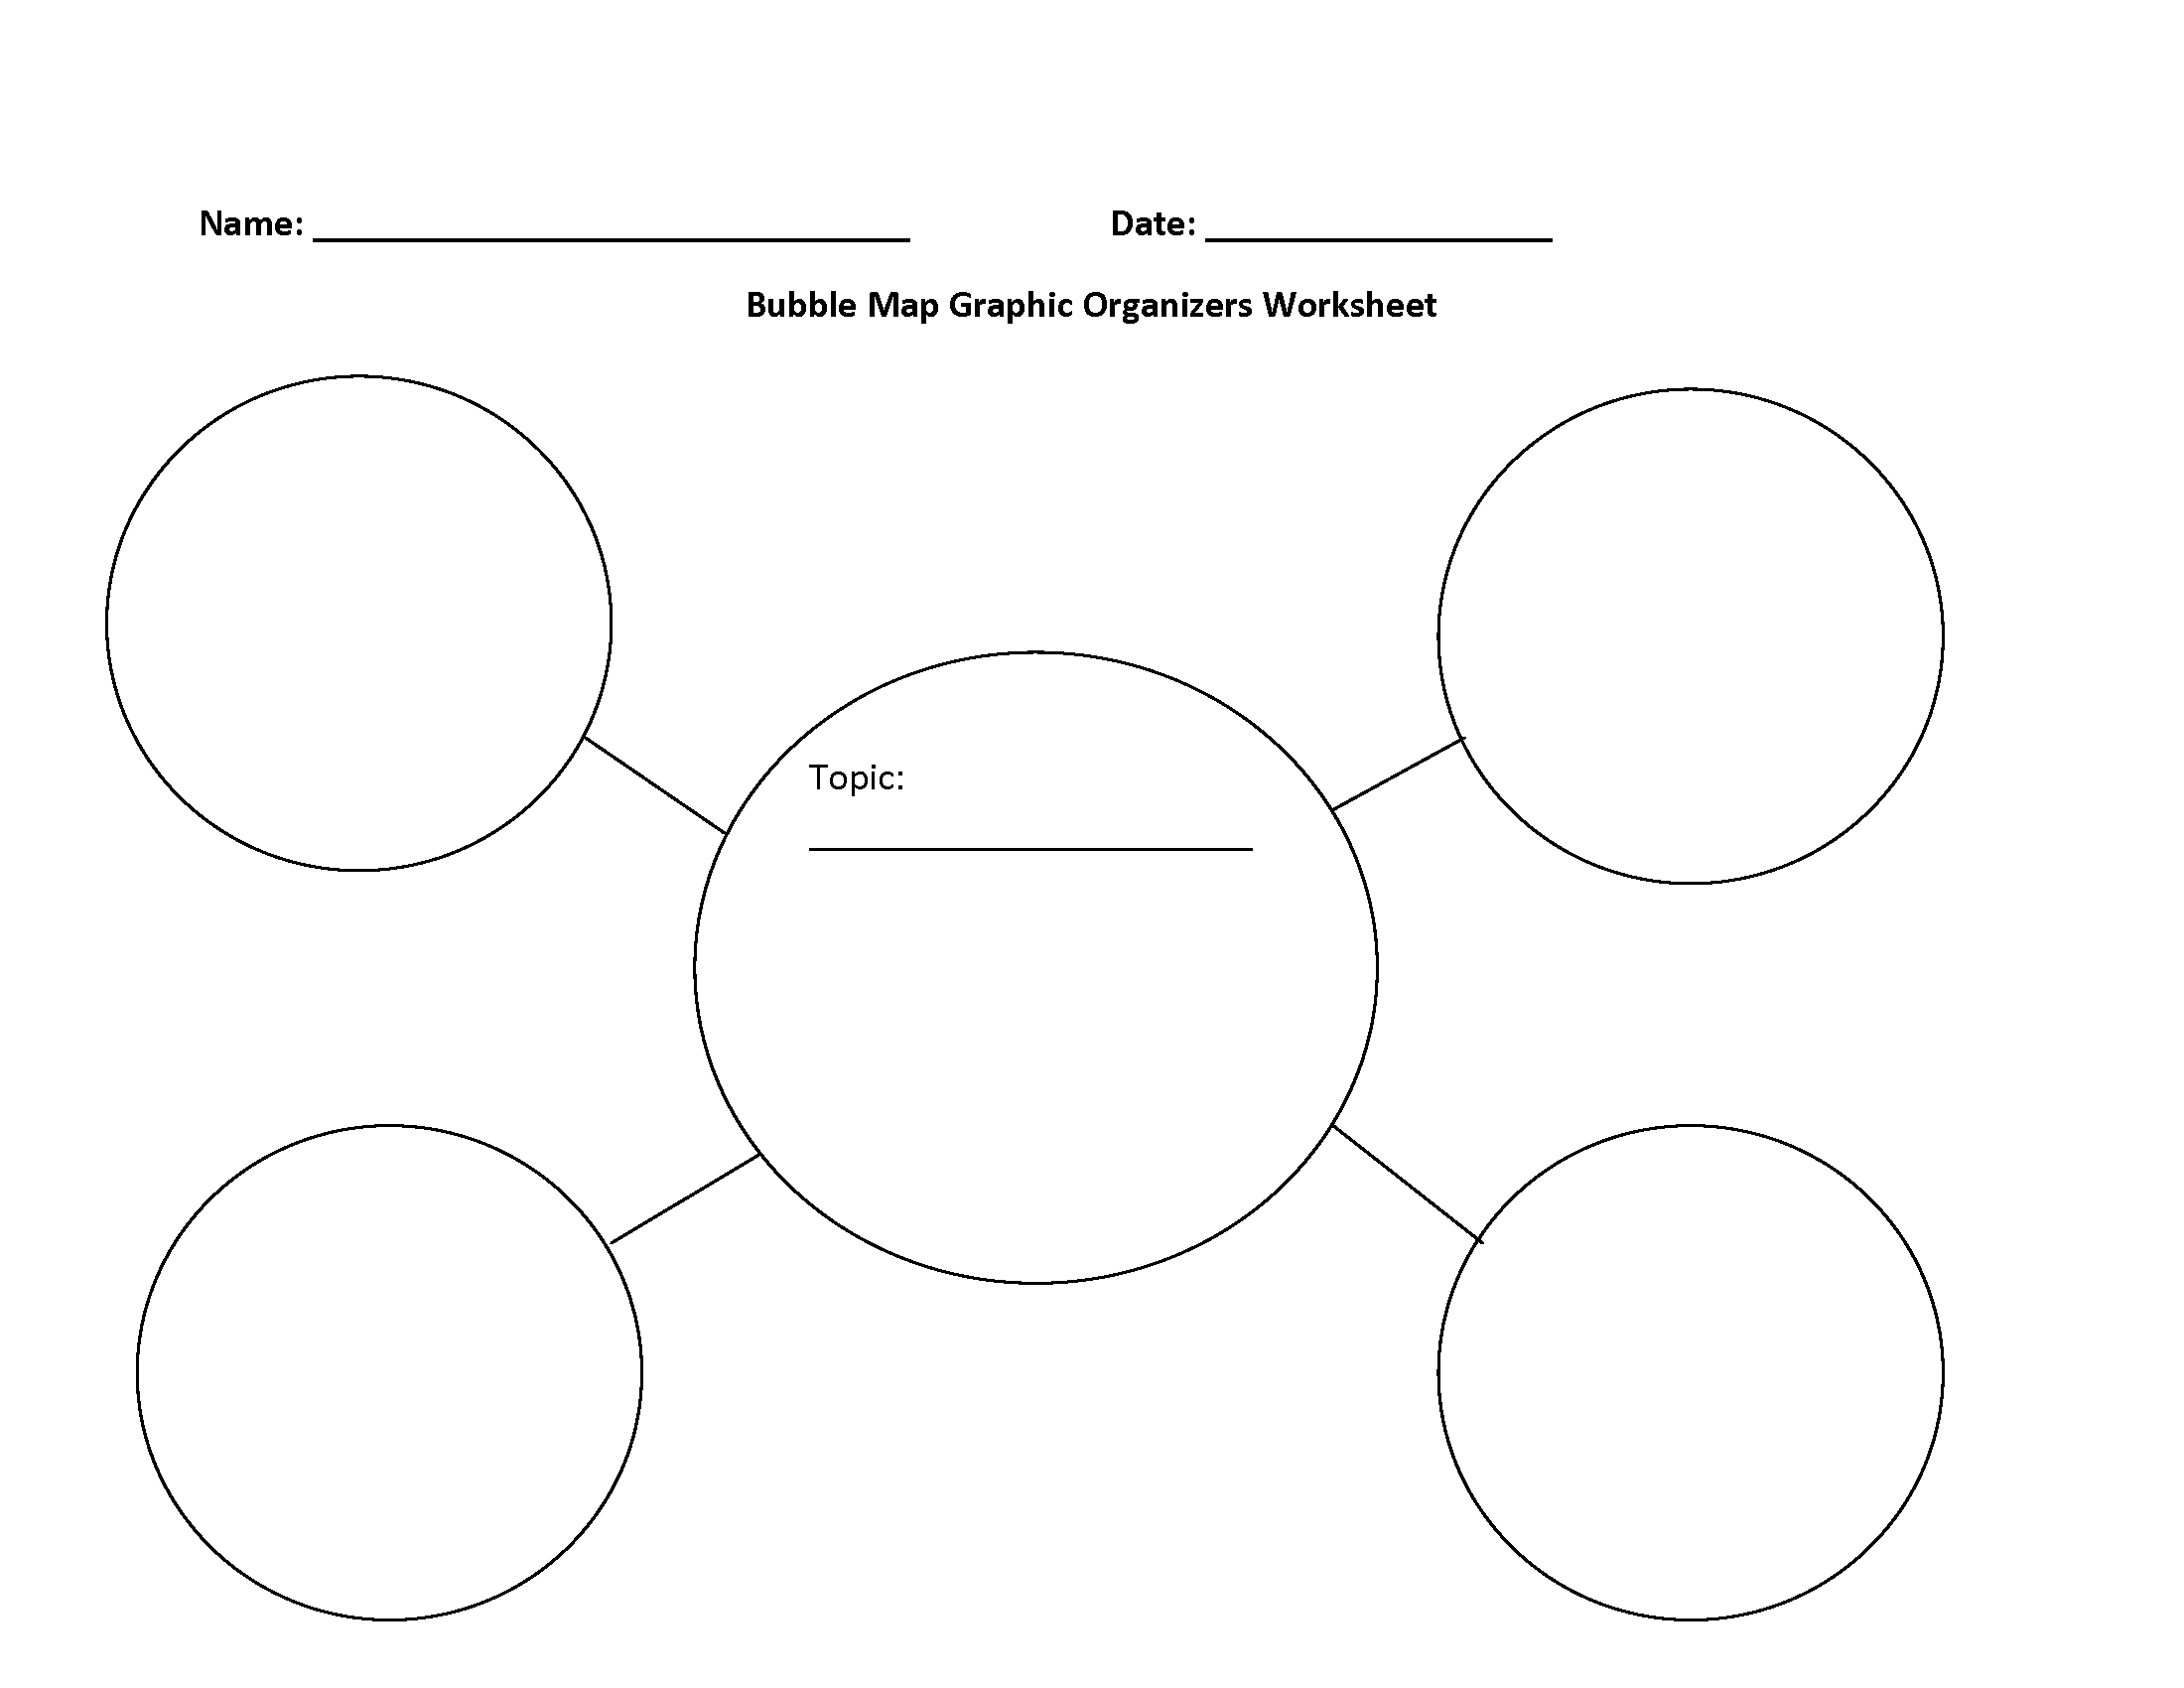 Bubble Map Graphic Organizers Worksheet